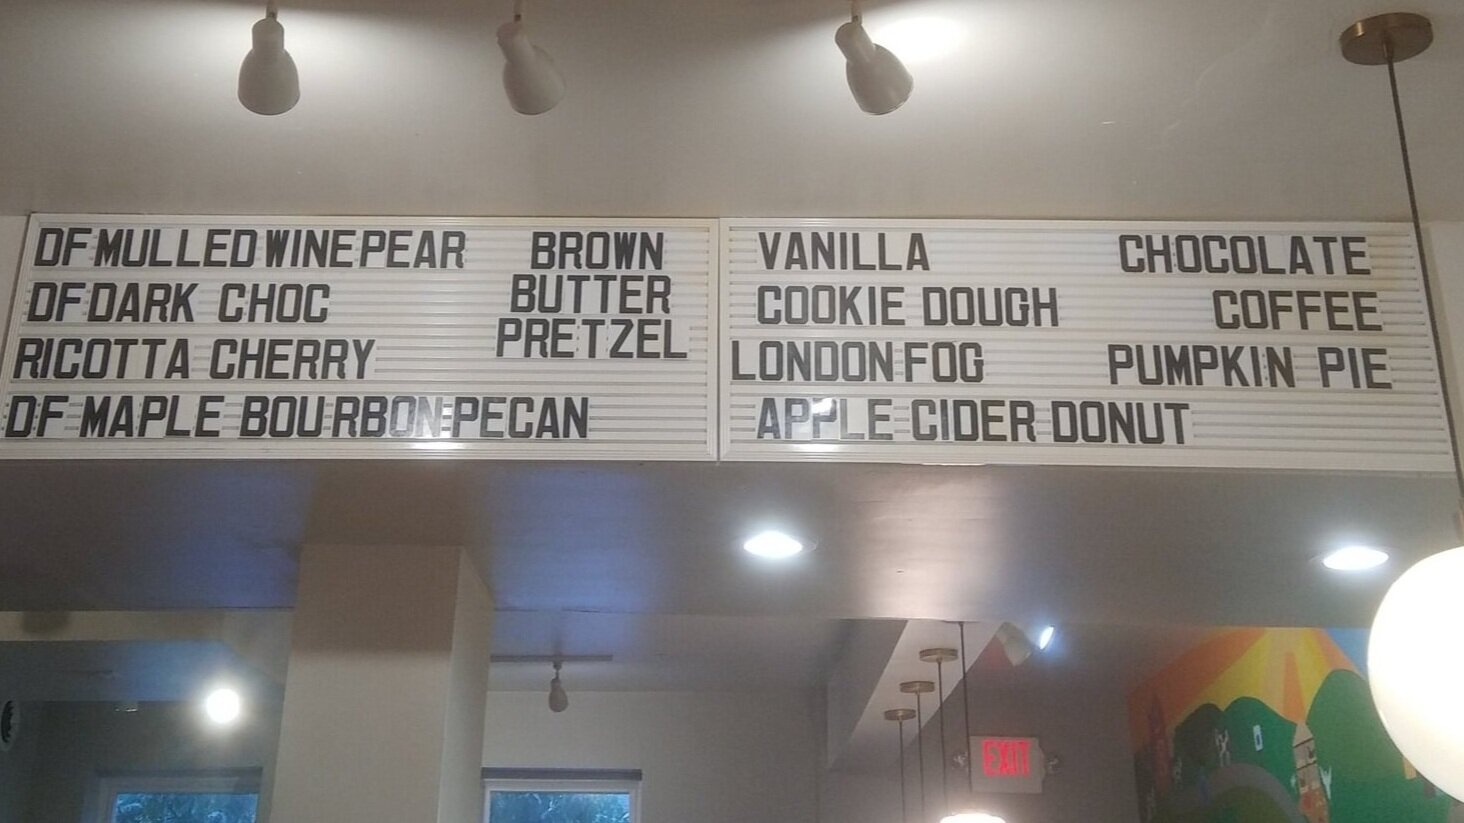 My goal? To try out all of these ice cream flavors.